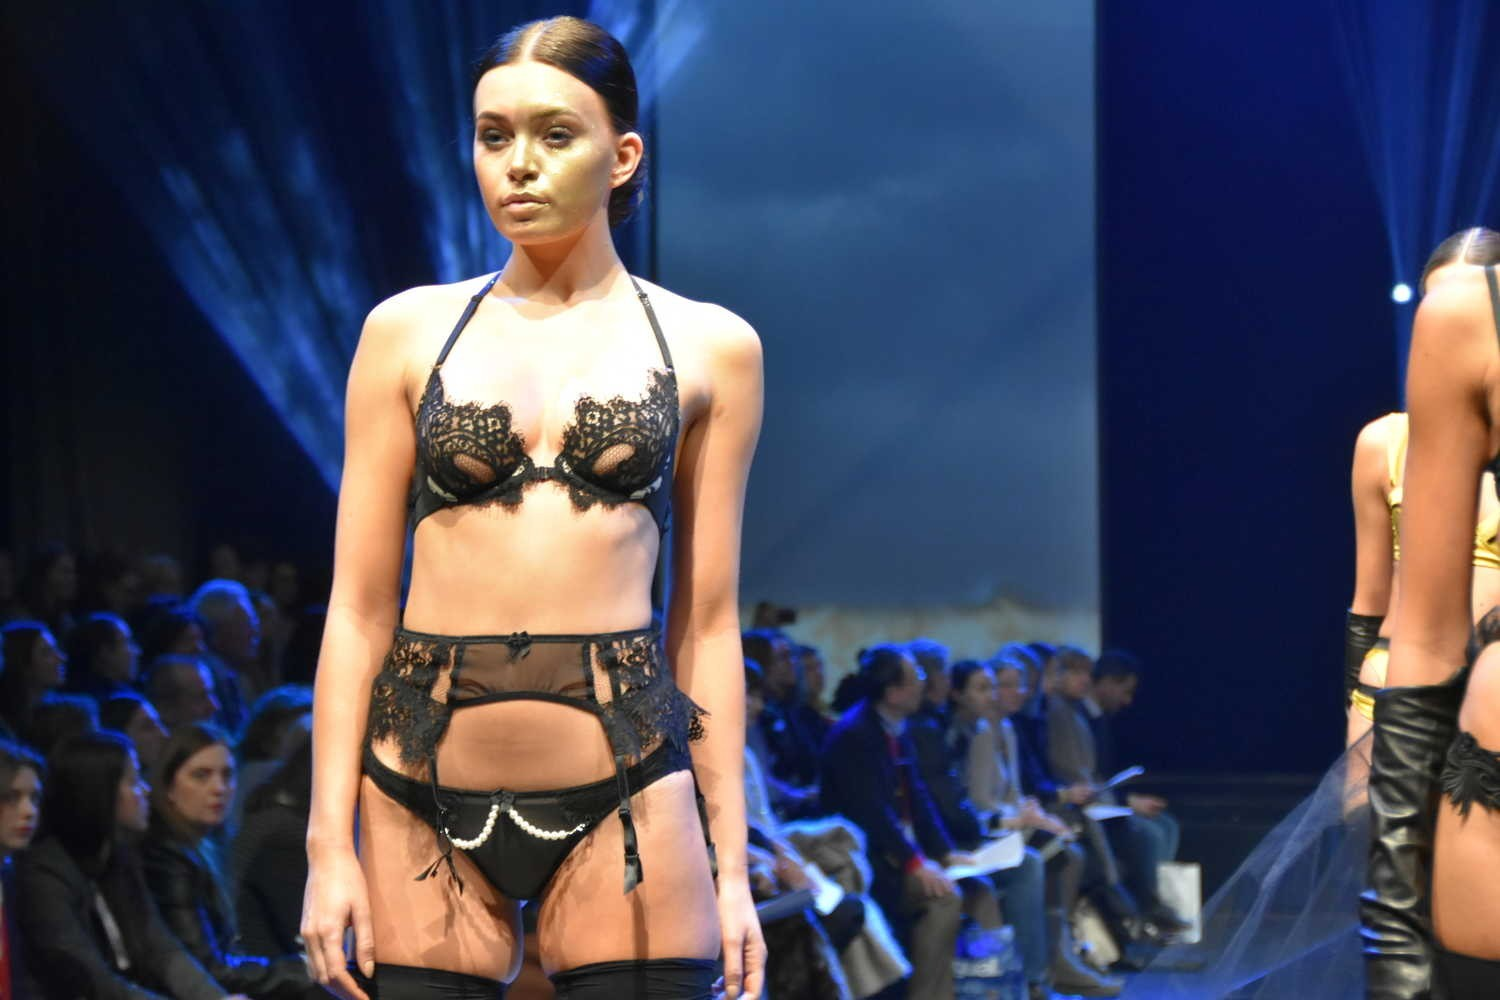 Salon De La Randonnée 2017 Paris Salon International De La Lingerie Paris 2017 Défilé